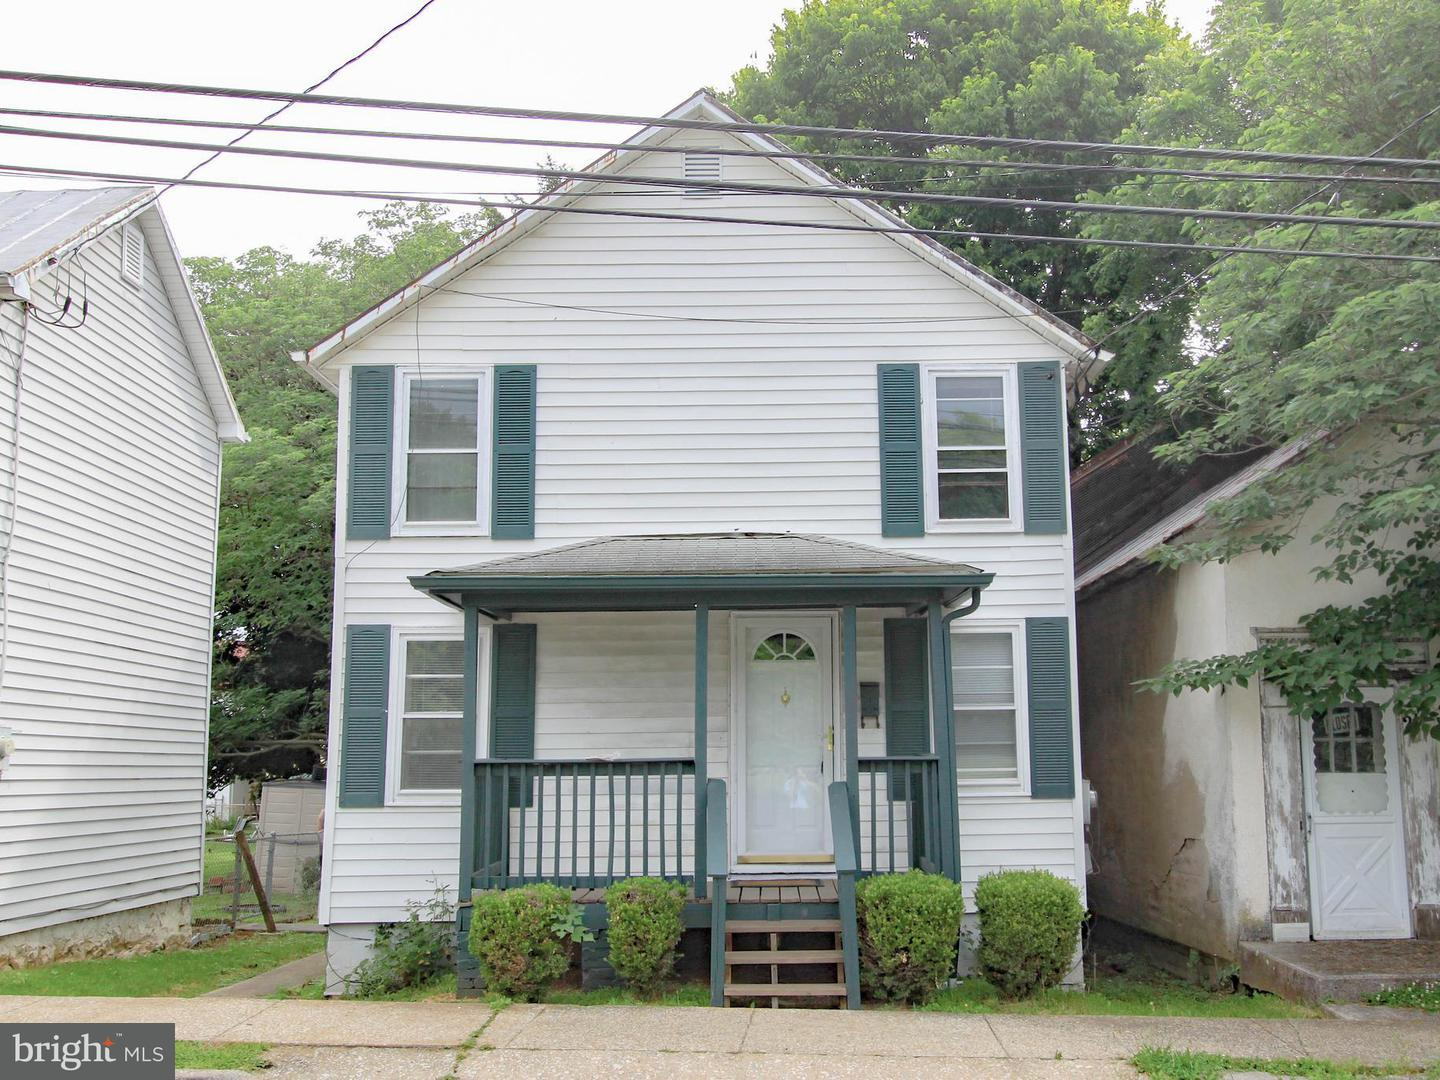 Other Residential for Rent at 209 S. West St Charles Town, West Virginia 25414 United States